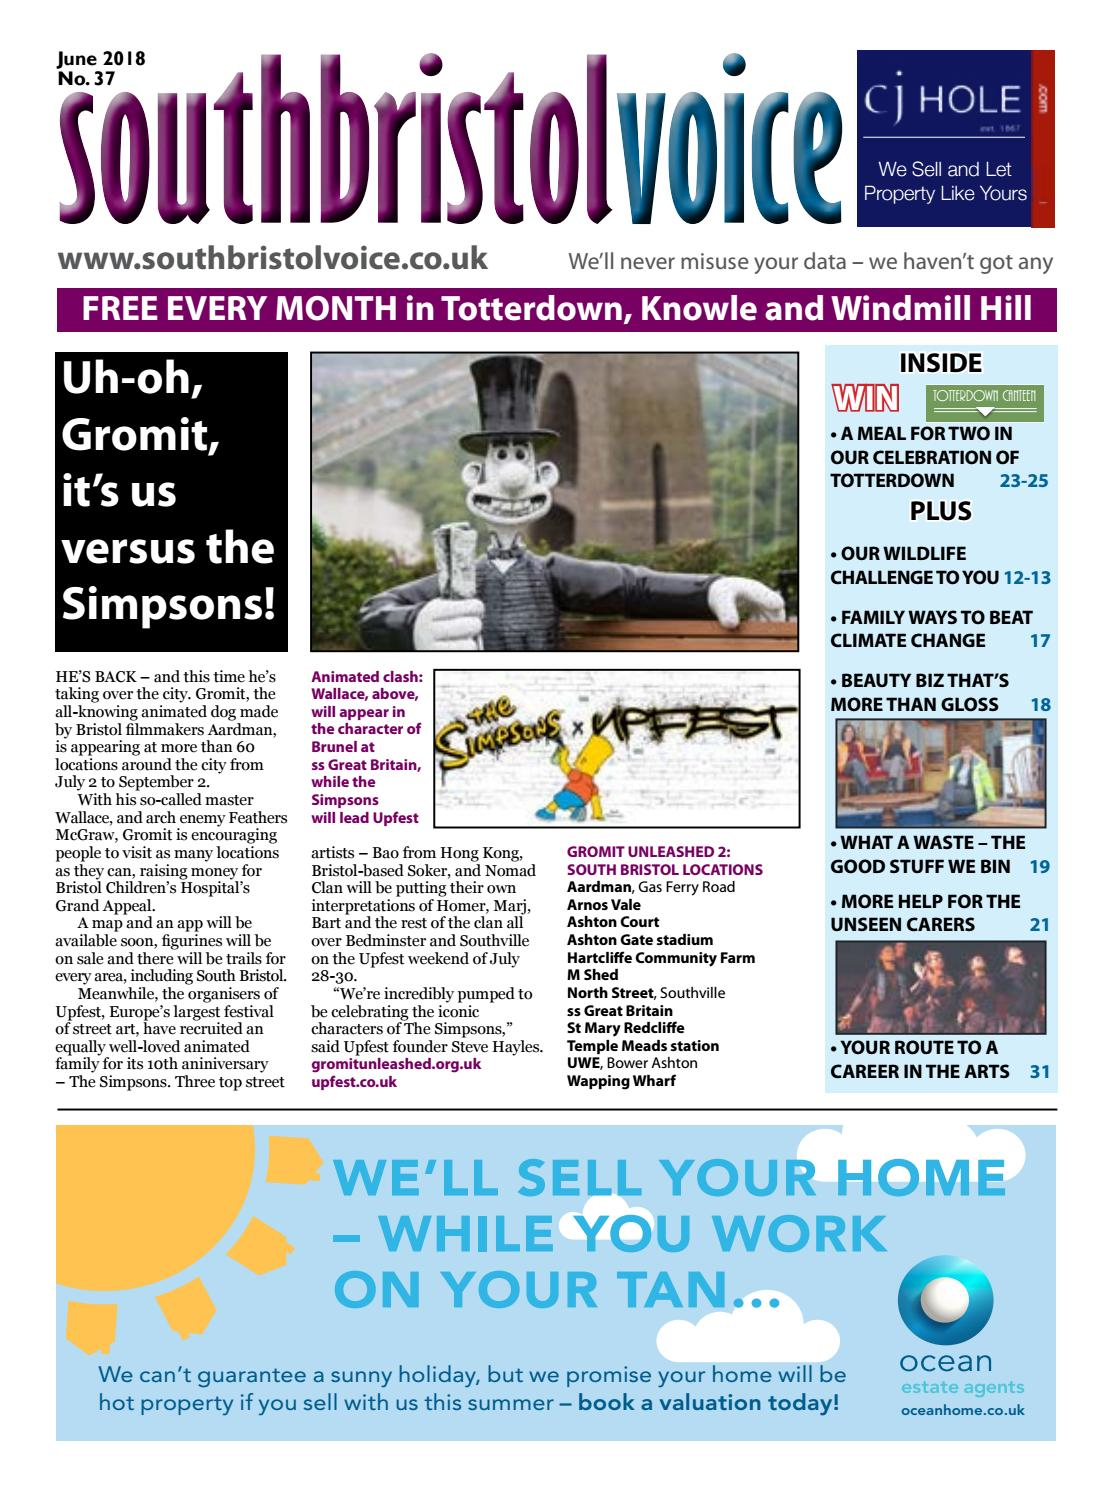 South Bristol Voice June 2018 by South Bristol Voice - issuu